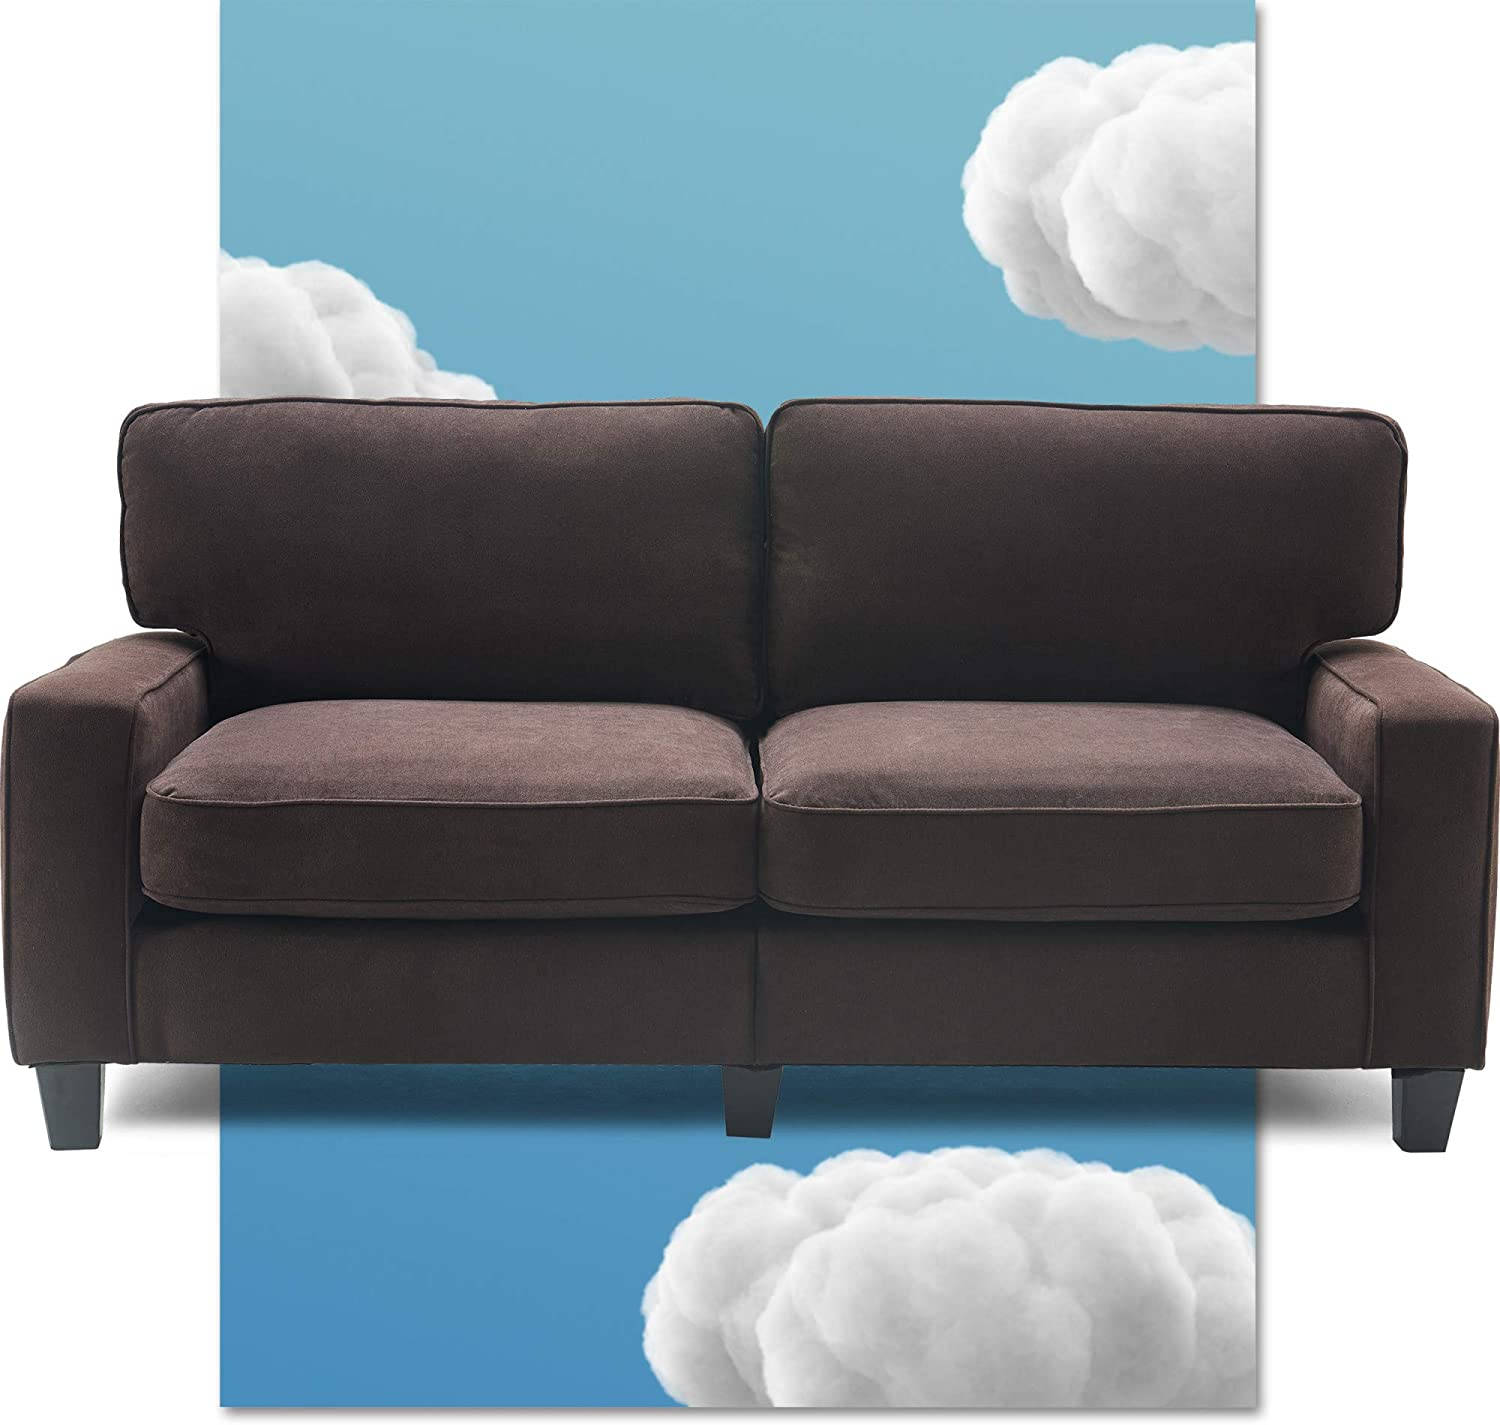 Serta Palisades Upholstered Sofas for Living Room Modern Design Couch, Straight Arms, Soft Fabric Upholstery, Tool-Free Assembly - 73